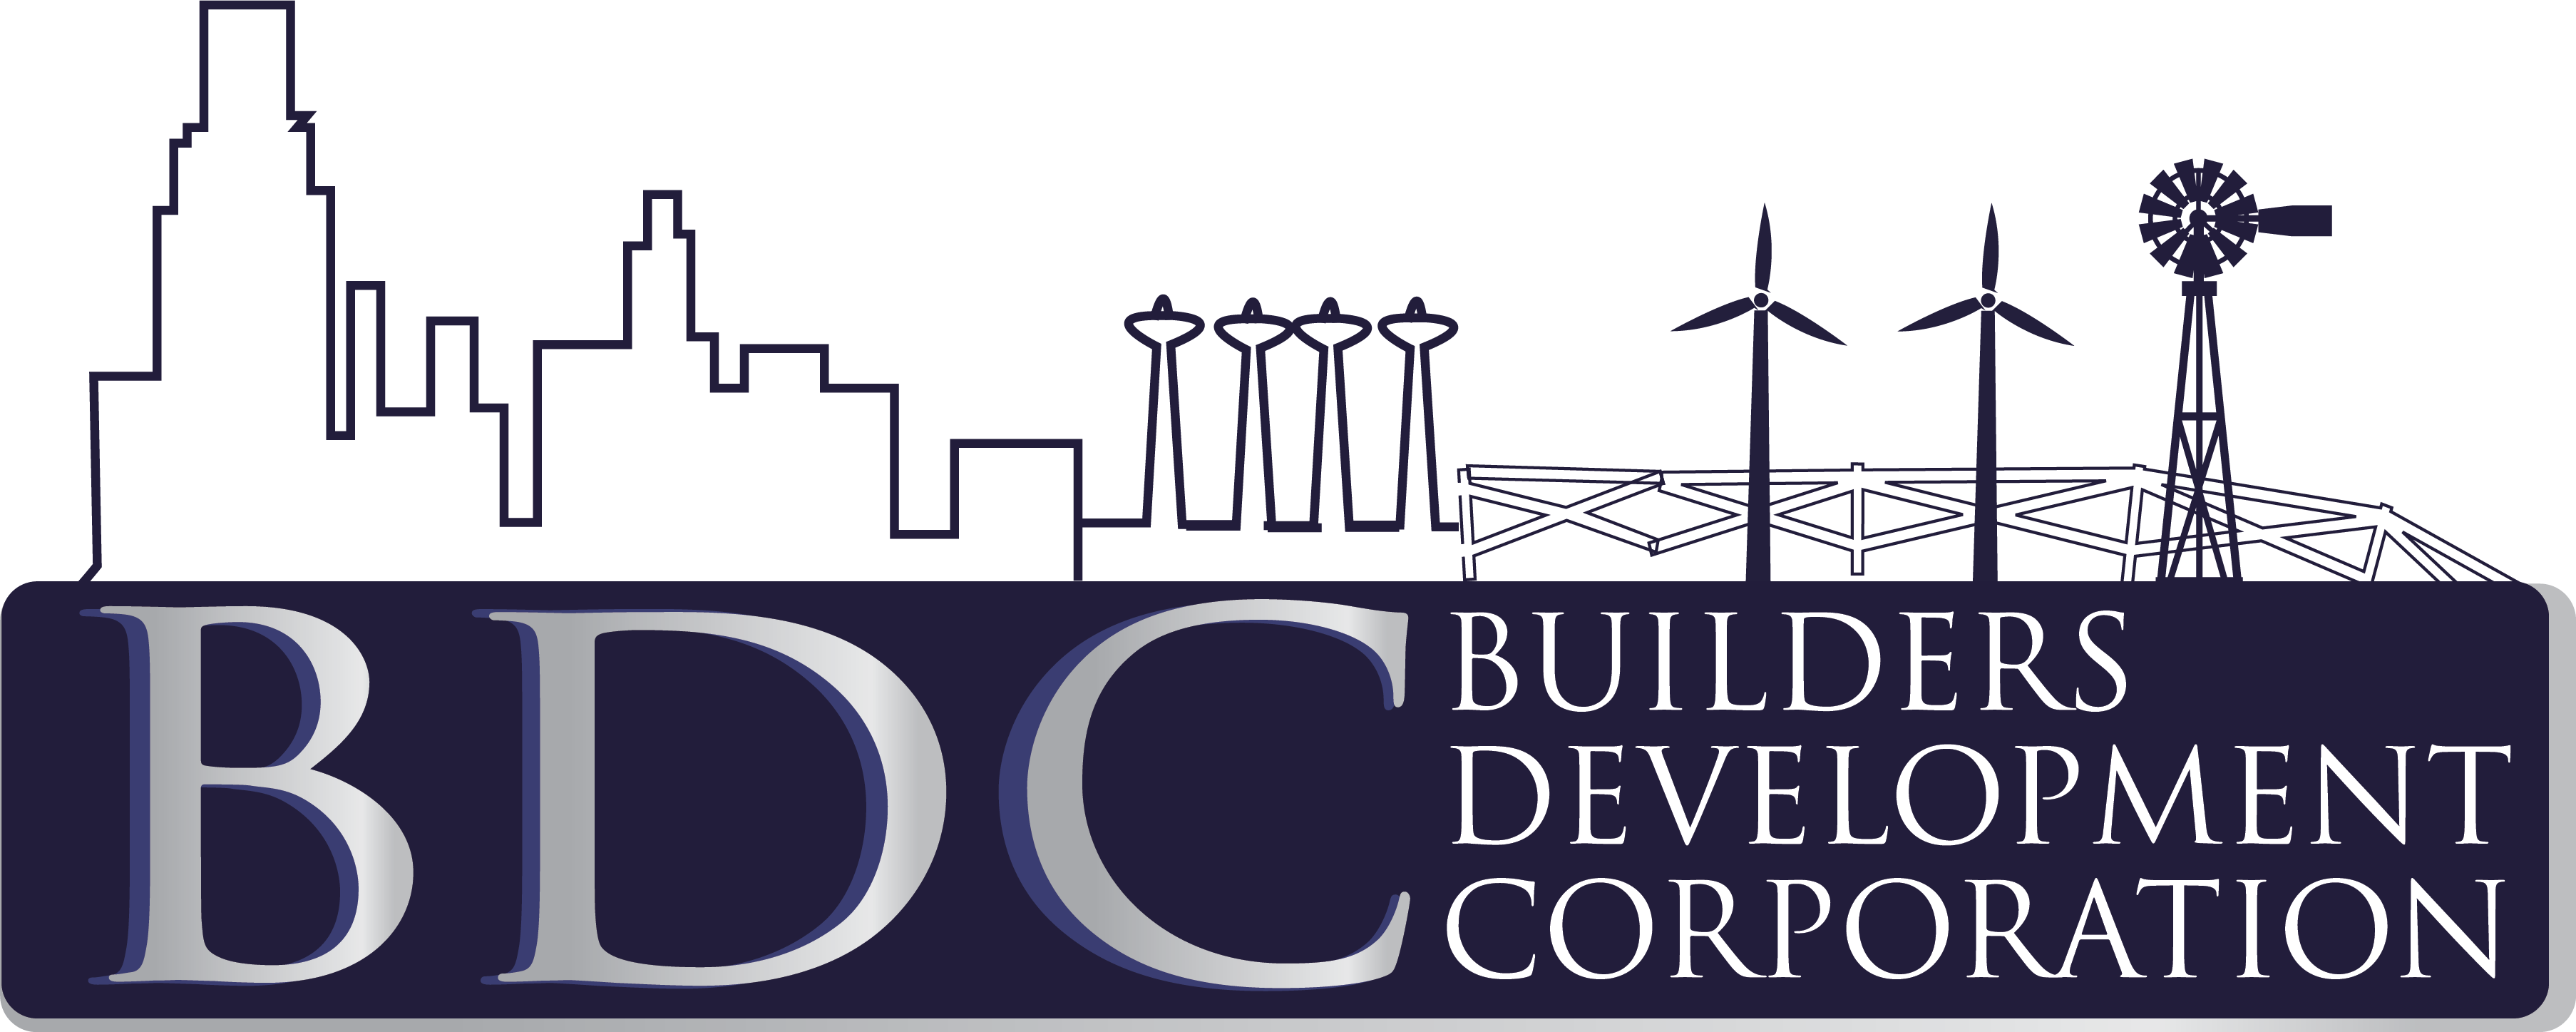 Builders Development Corporation